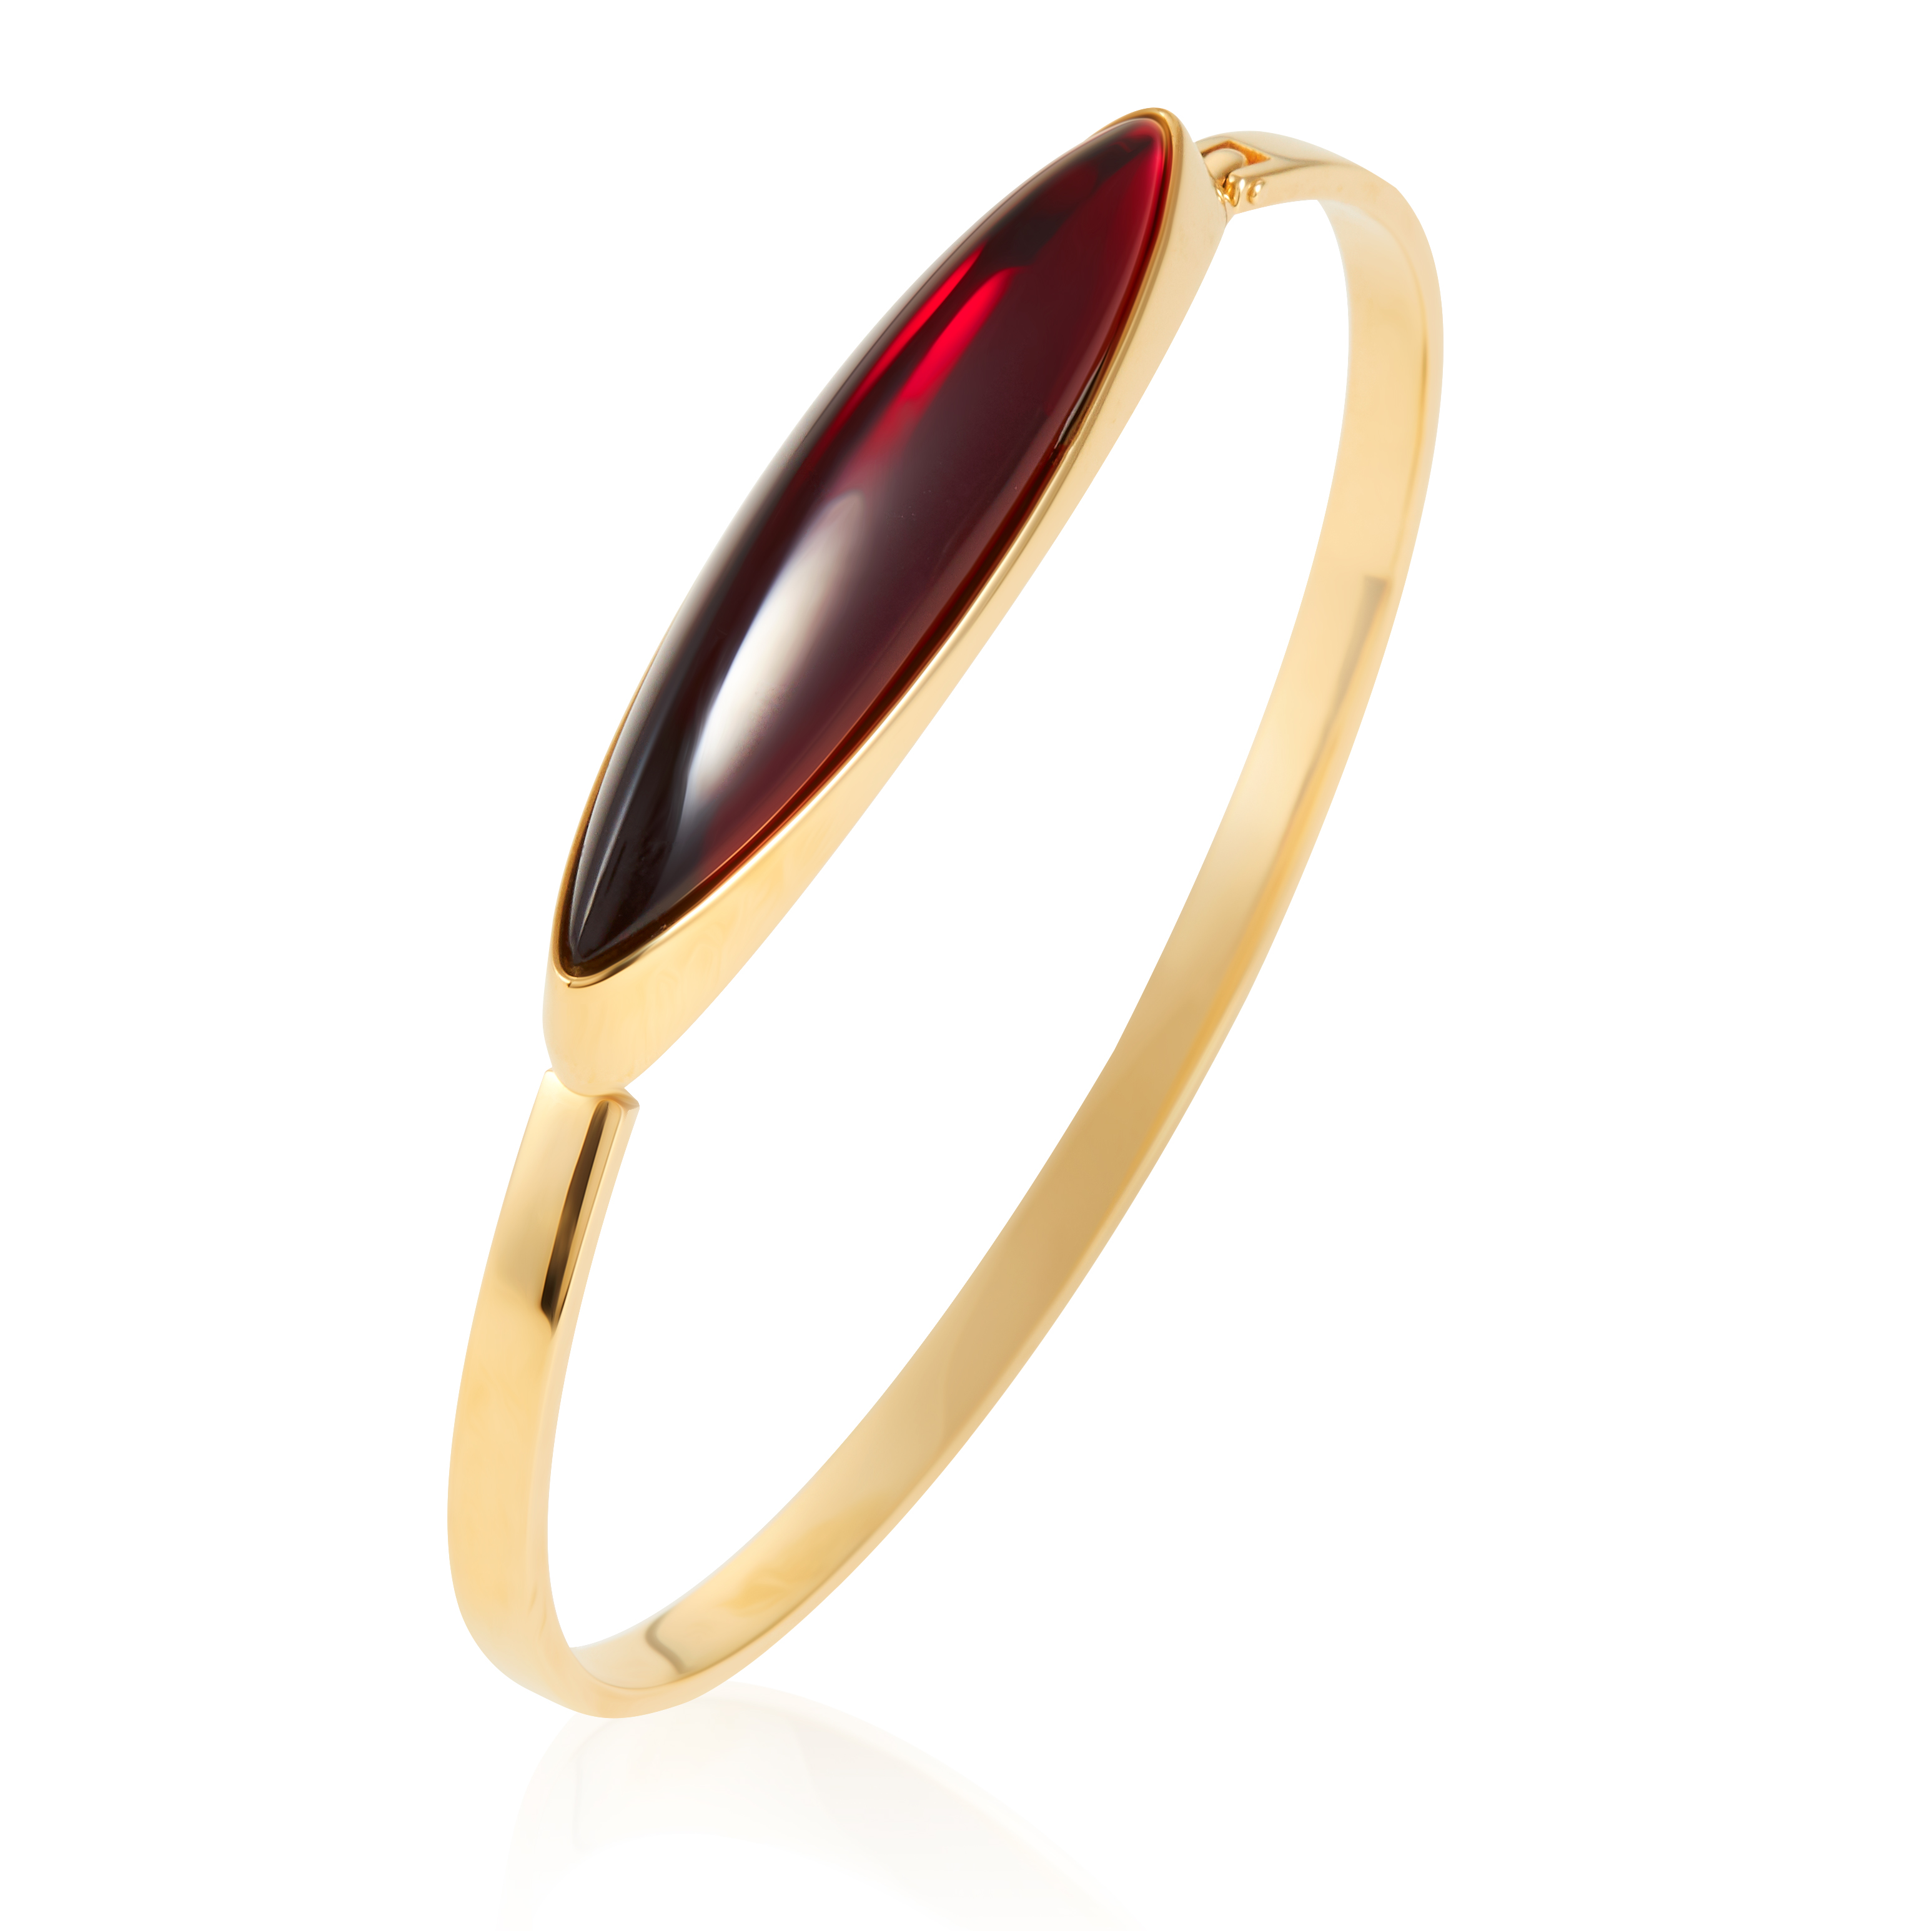 Los 334 - A RED CRYSTAL BANGLE, LALIQUE in yellow gold, jewelled with a large cabochon red crystal, signed